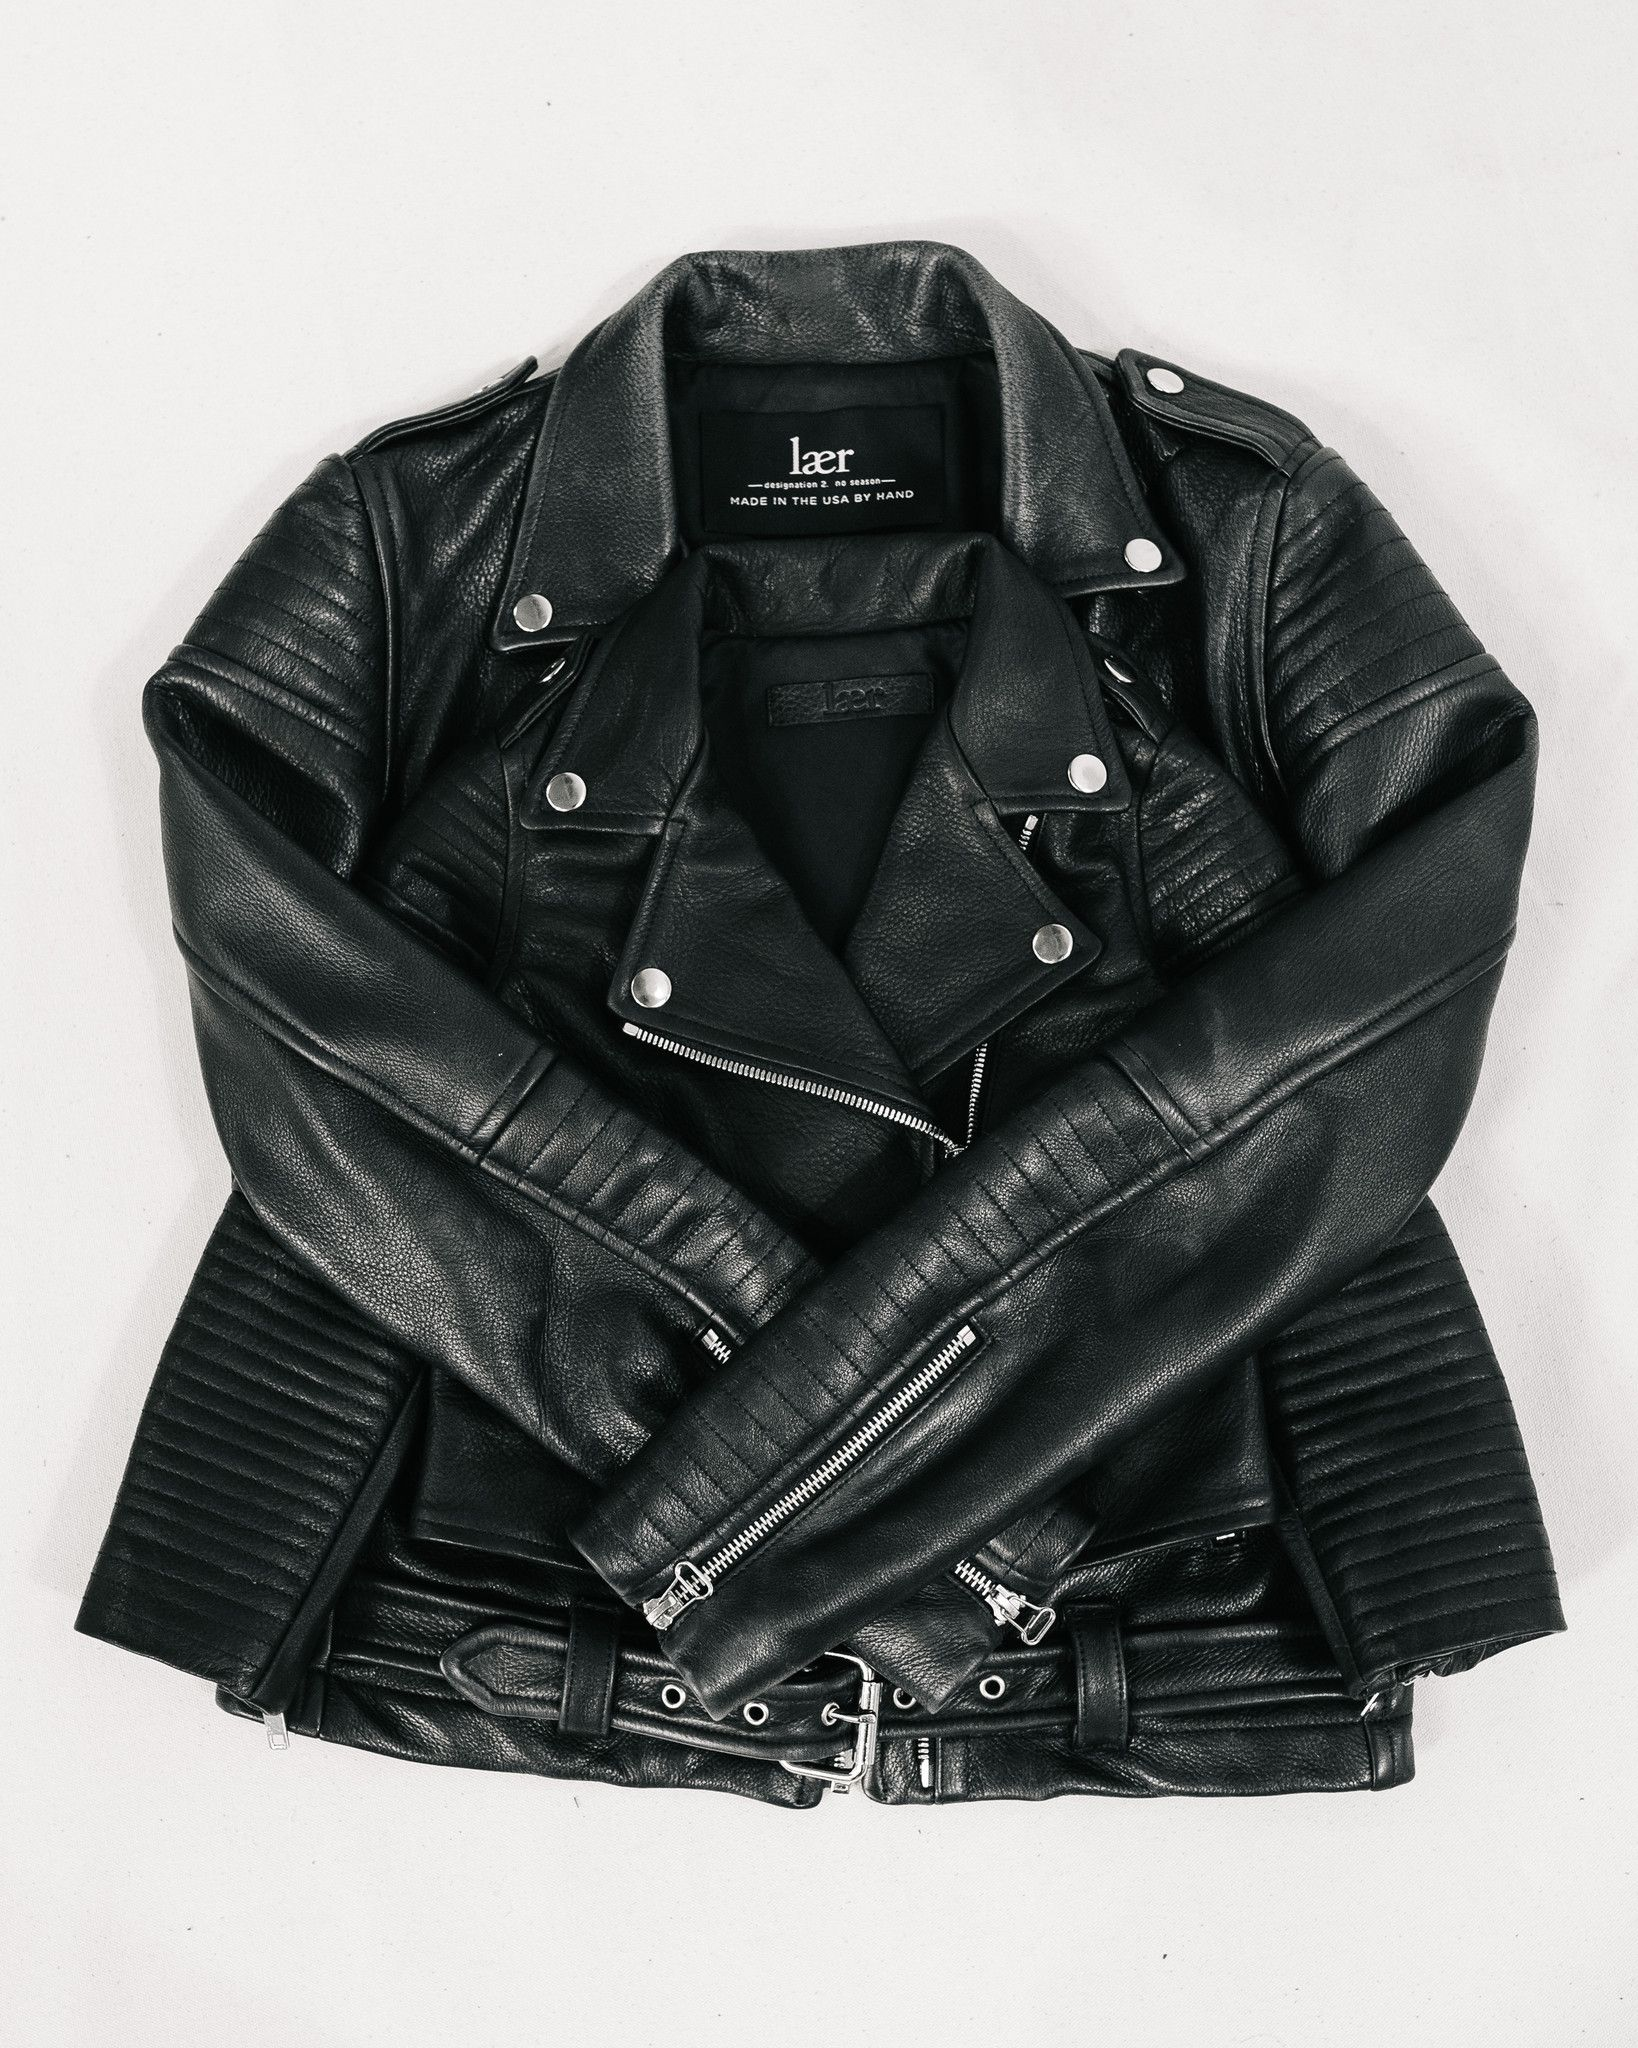 Laer Brand Leather Jackets and Denim, Made in the USA